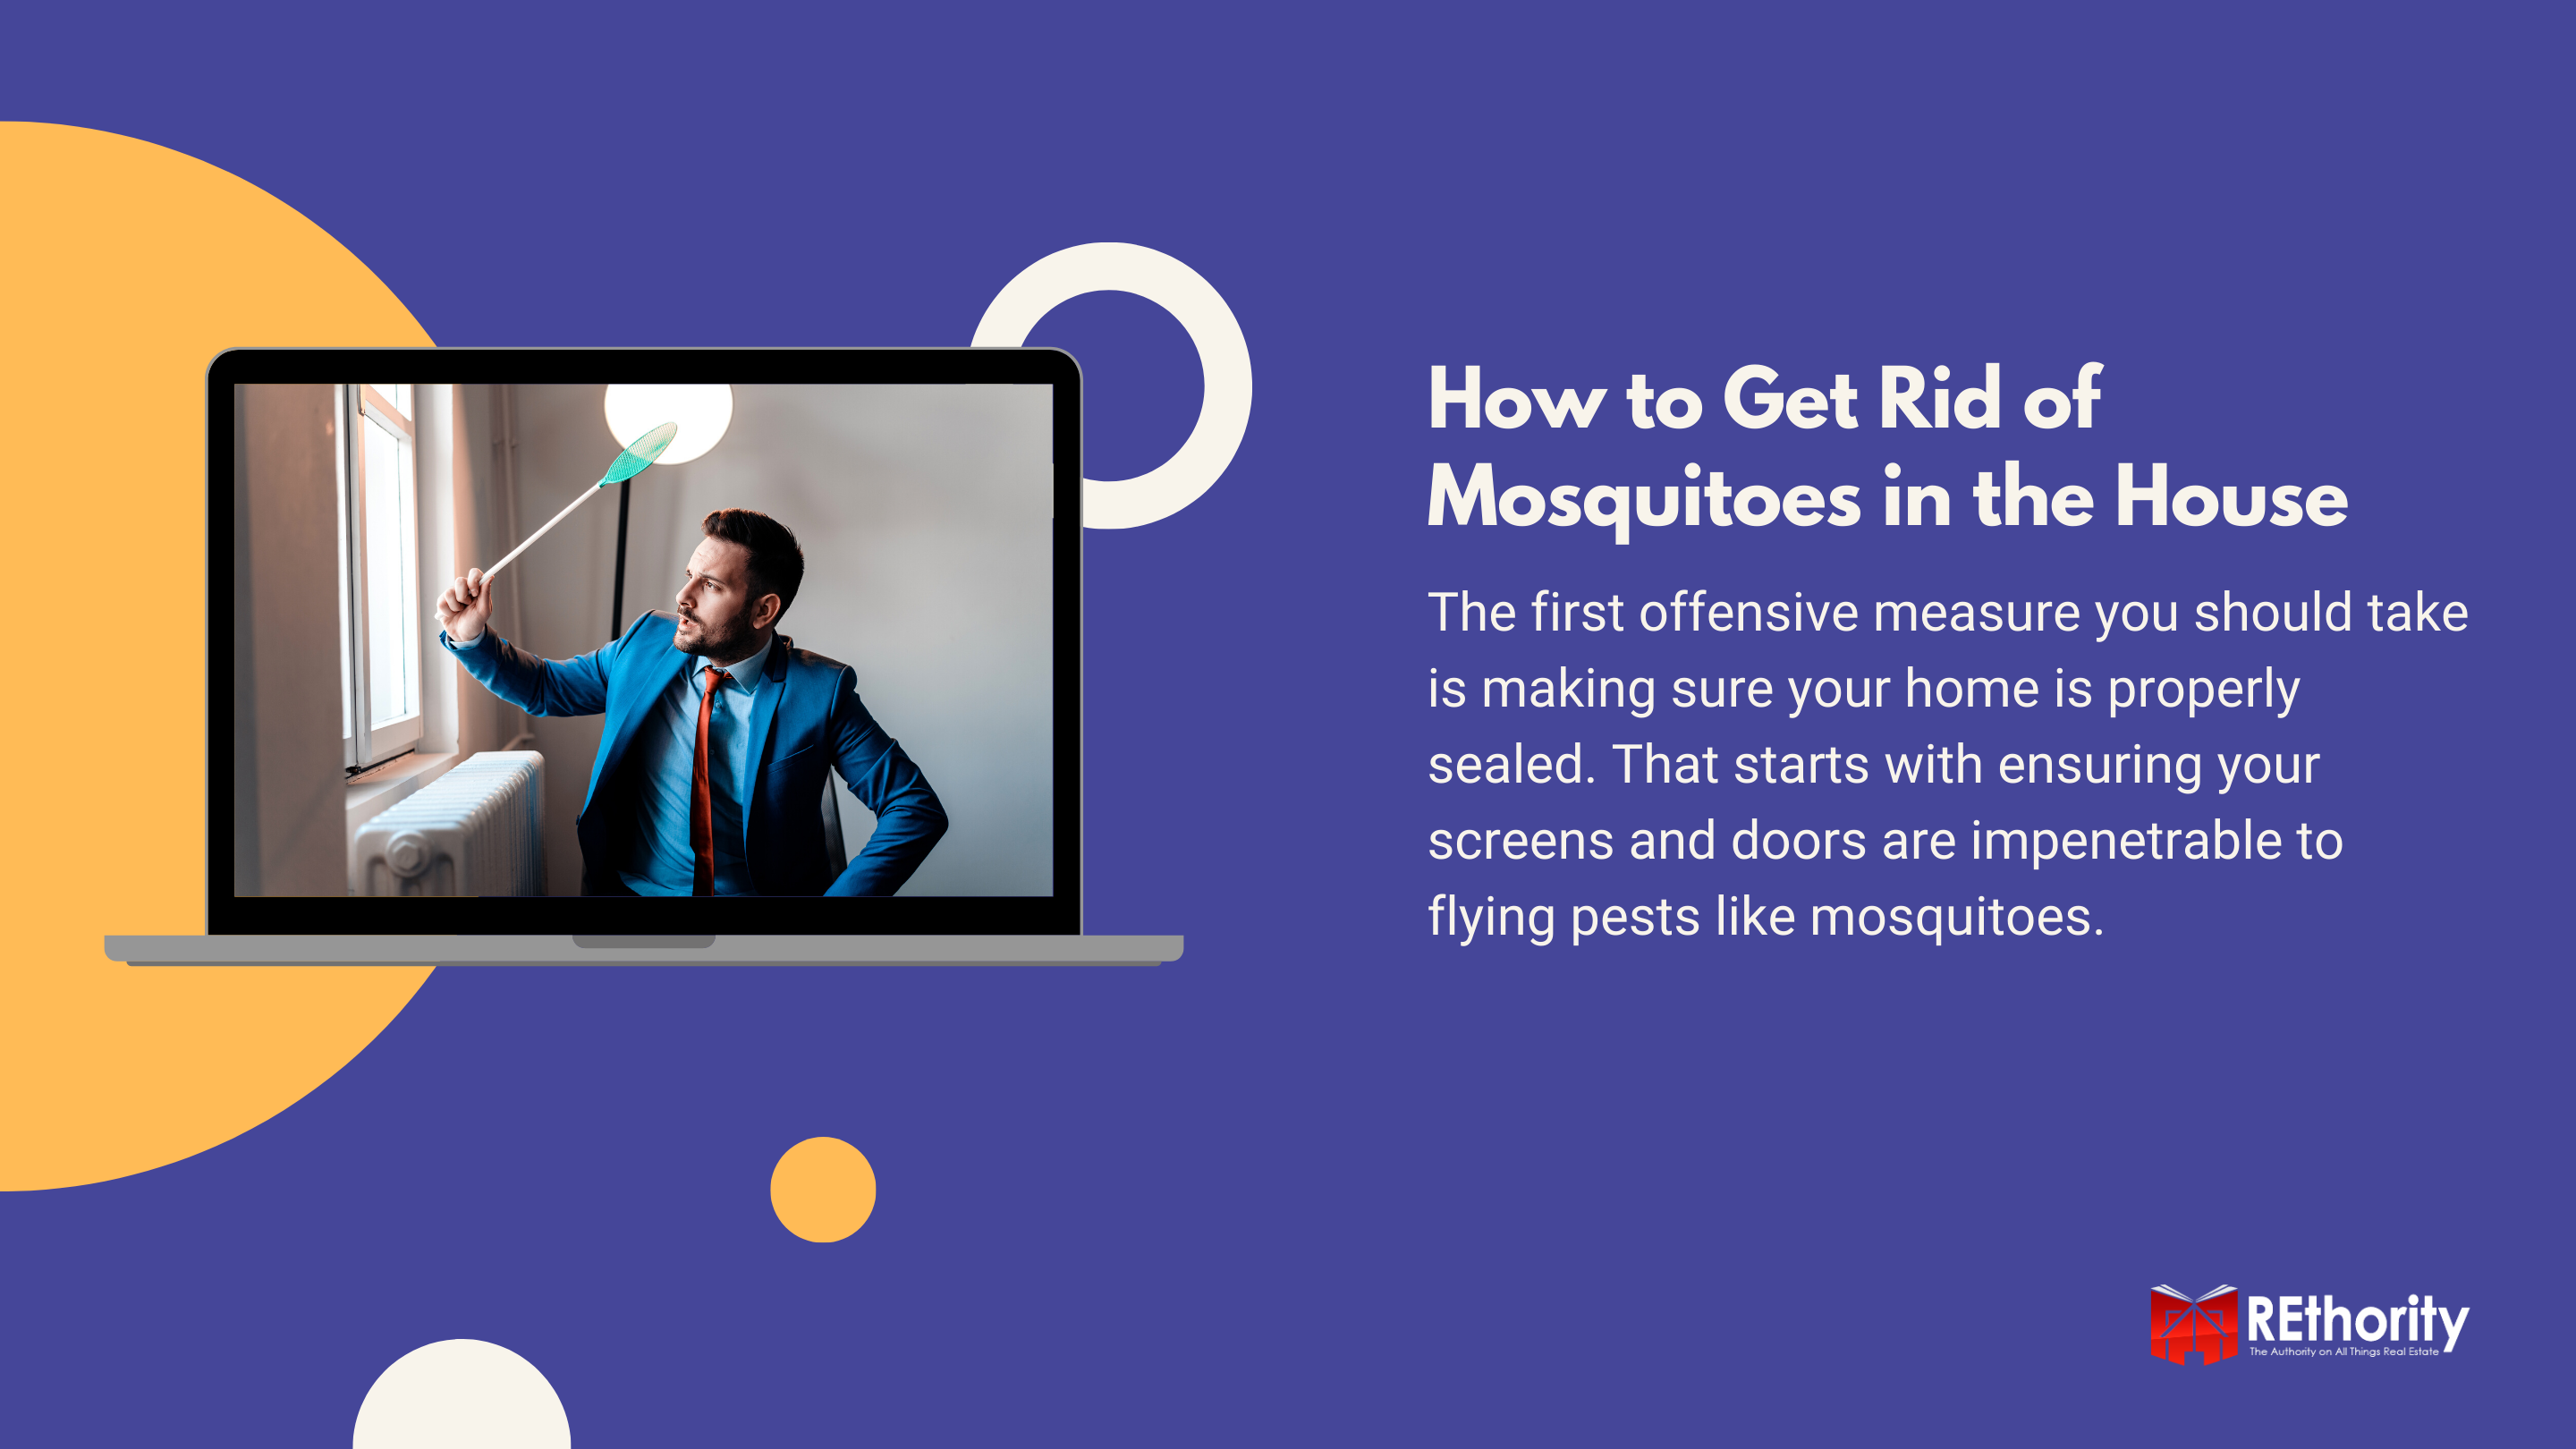 How to Get Rid of Mosquitoes in the House graphic featuring a photo of a guy in a suit holding a flyswatter on a computer screen